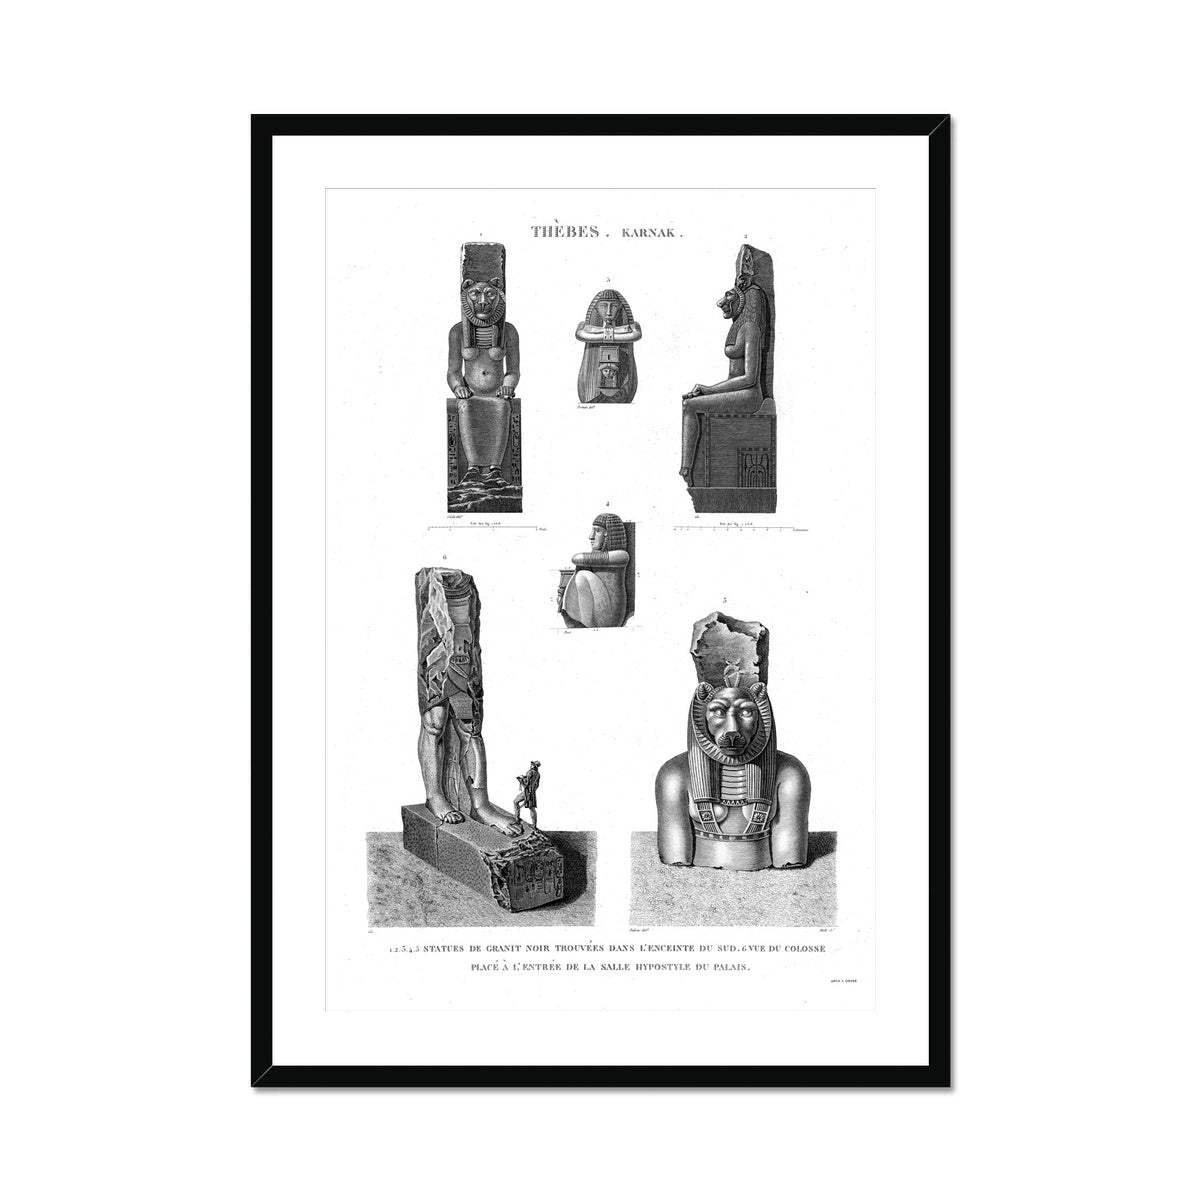 Black Granite Statues - Karnak - Thebes Egypt -  Framed & Mounted Print